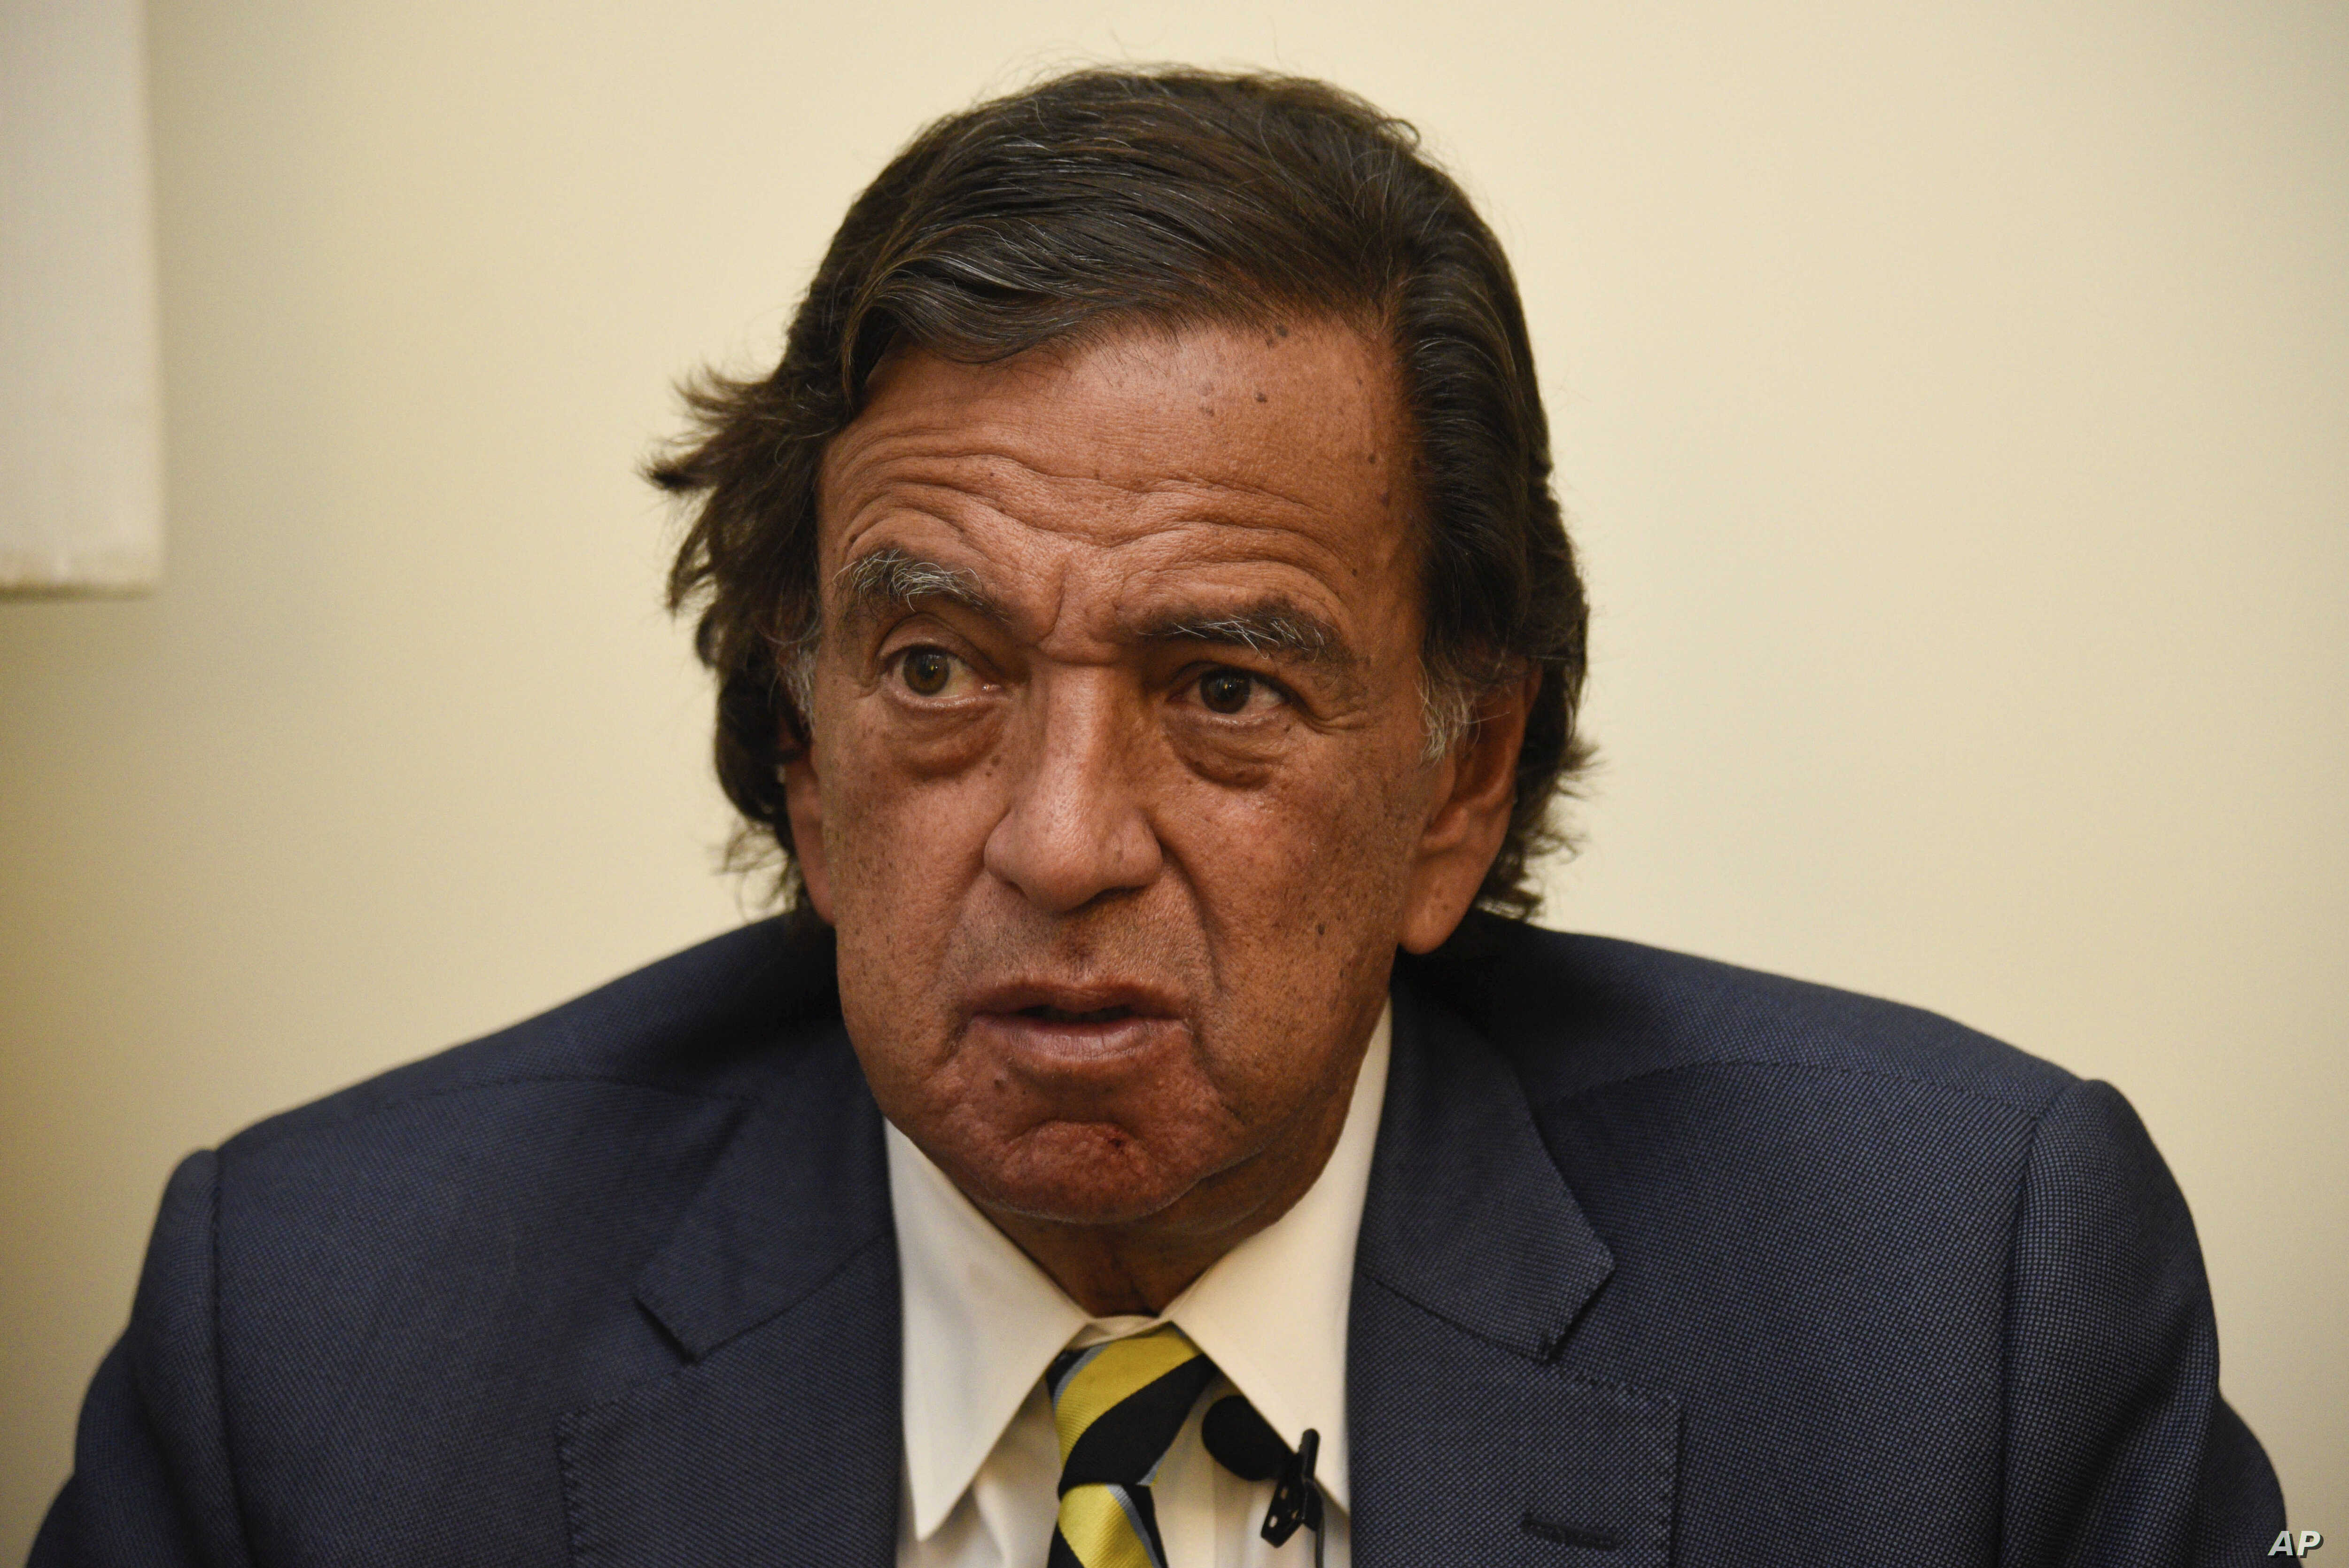 During an interview with the Associated Press, Former New Mexico Gov. Bill Richardson said he has resigned from an advisory panel trying to tackle the massive Rohingya refugee crisis, Jan. 24, 2018, in Yangon, Myanmar.